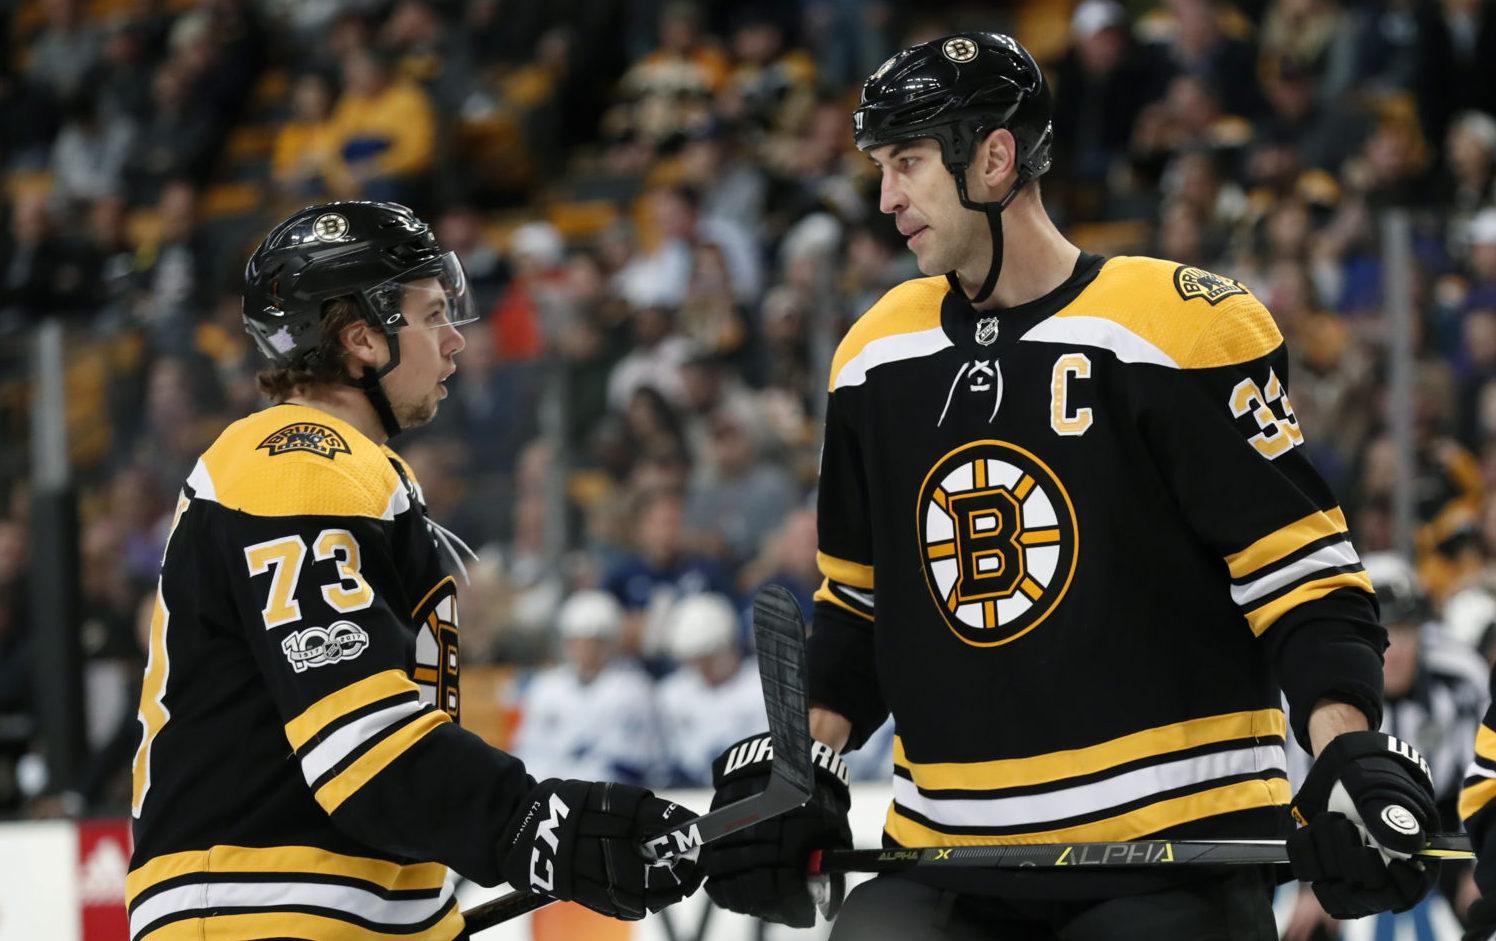 Bruins honour Bergeron with ceremony for 1,000th game